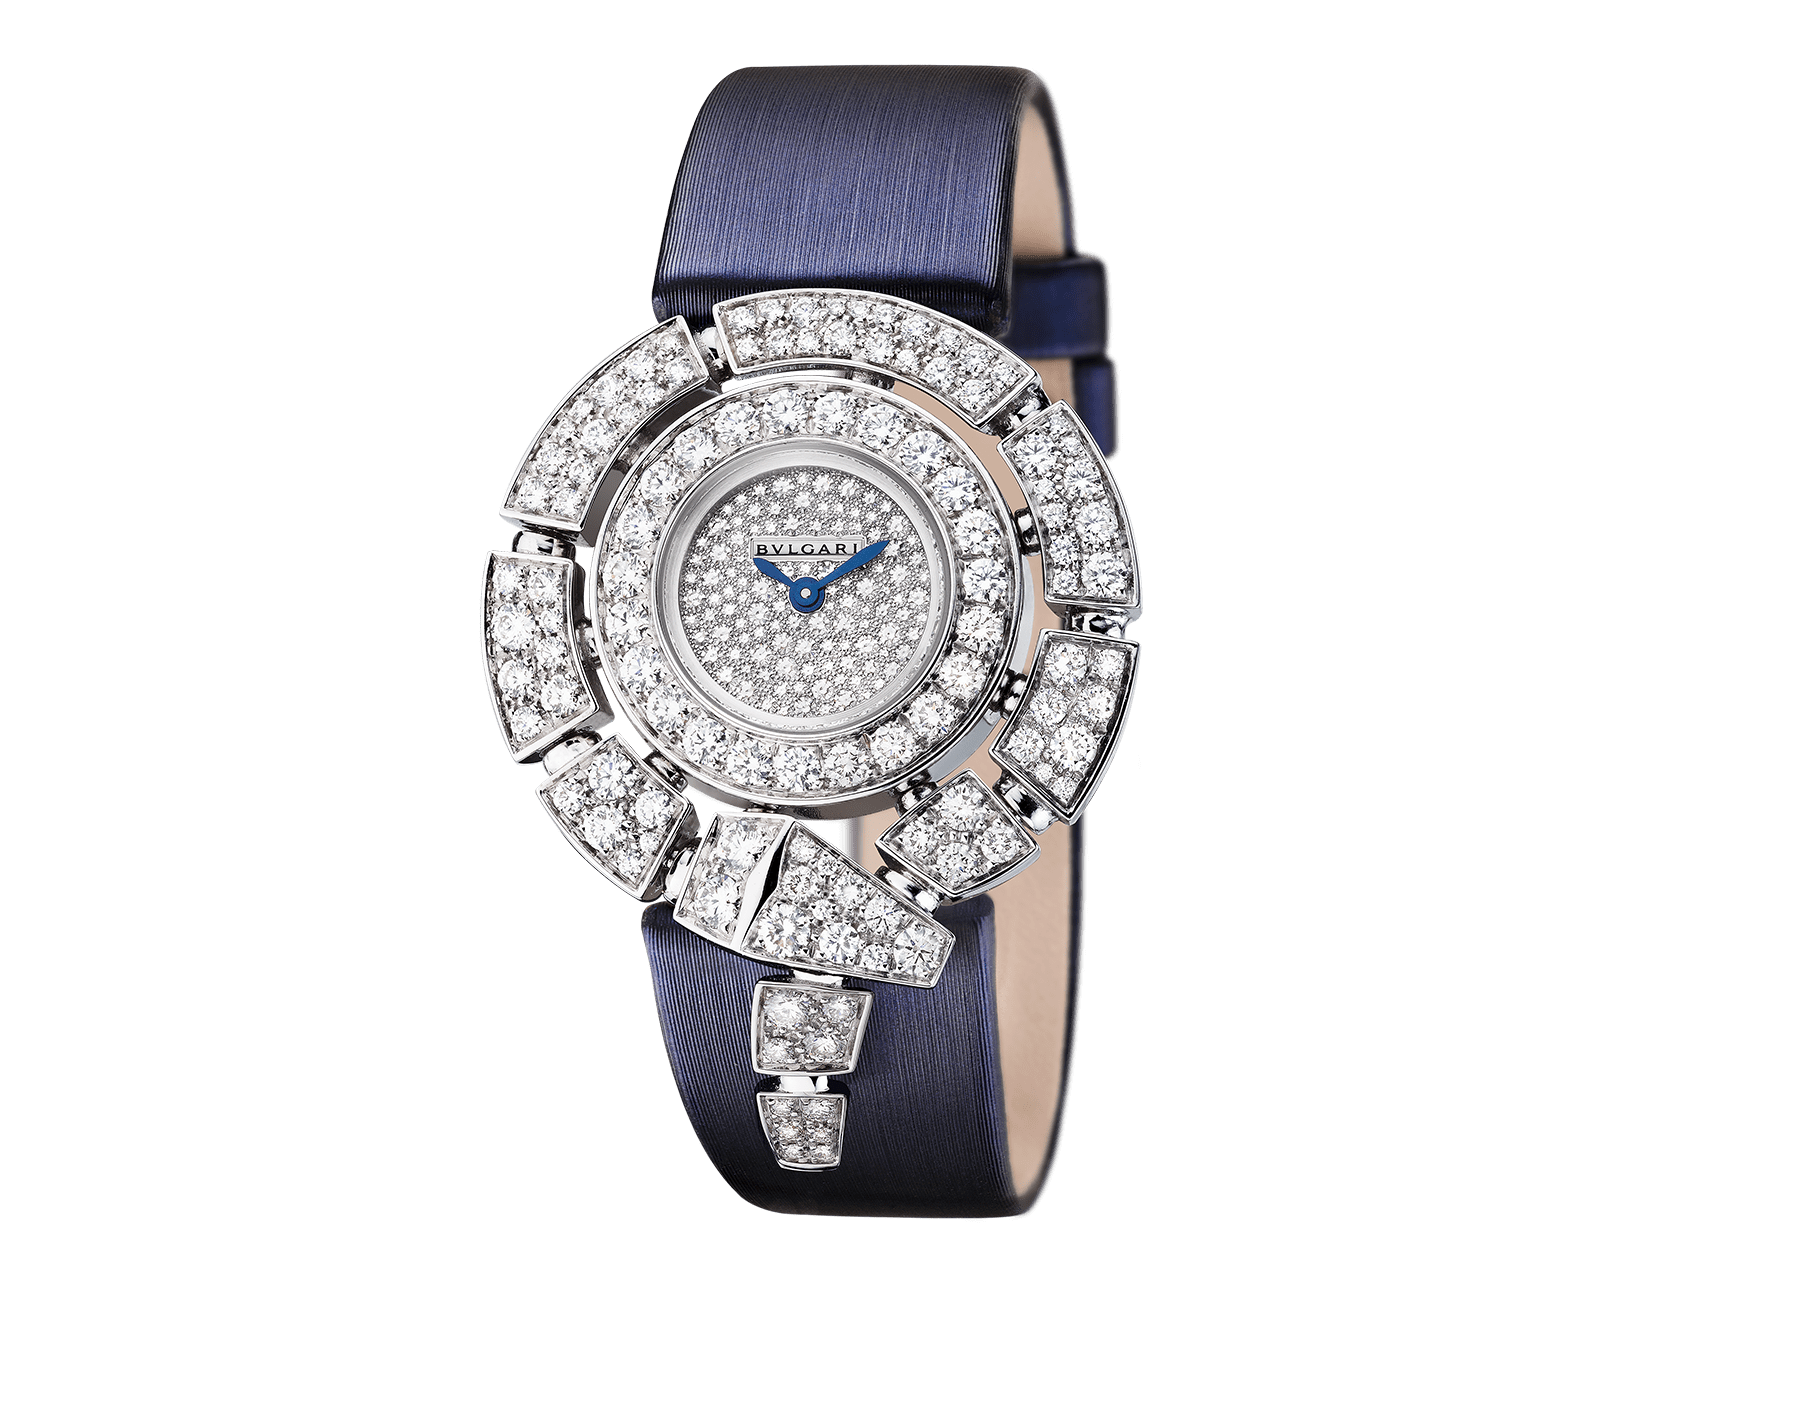 Serpenti Incantati watch with 18kt white gold case set with brilliant cut diamonds, snow-pavé diamond dial and blue satin bracelet. 102538 image 1